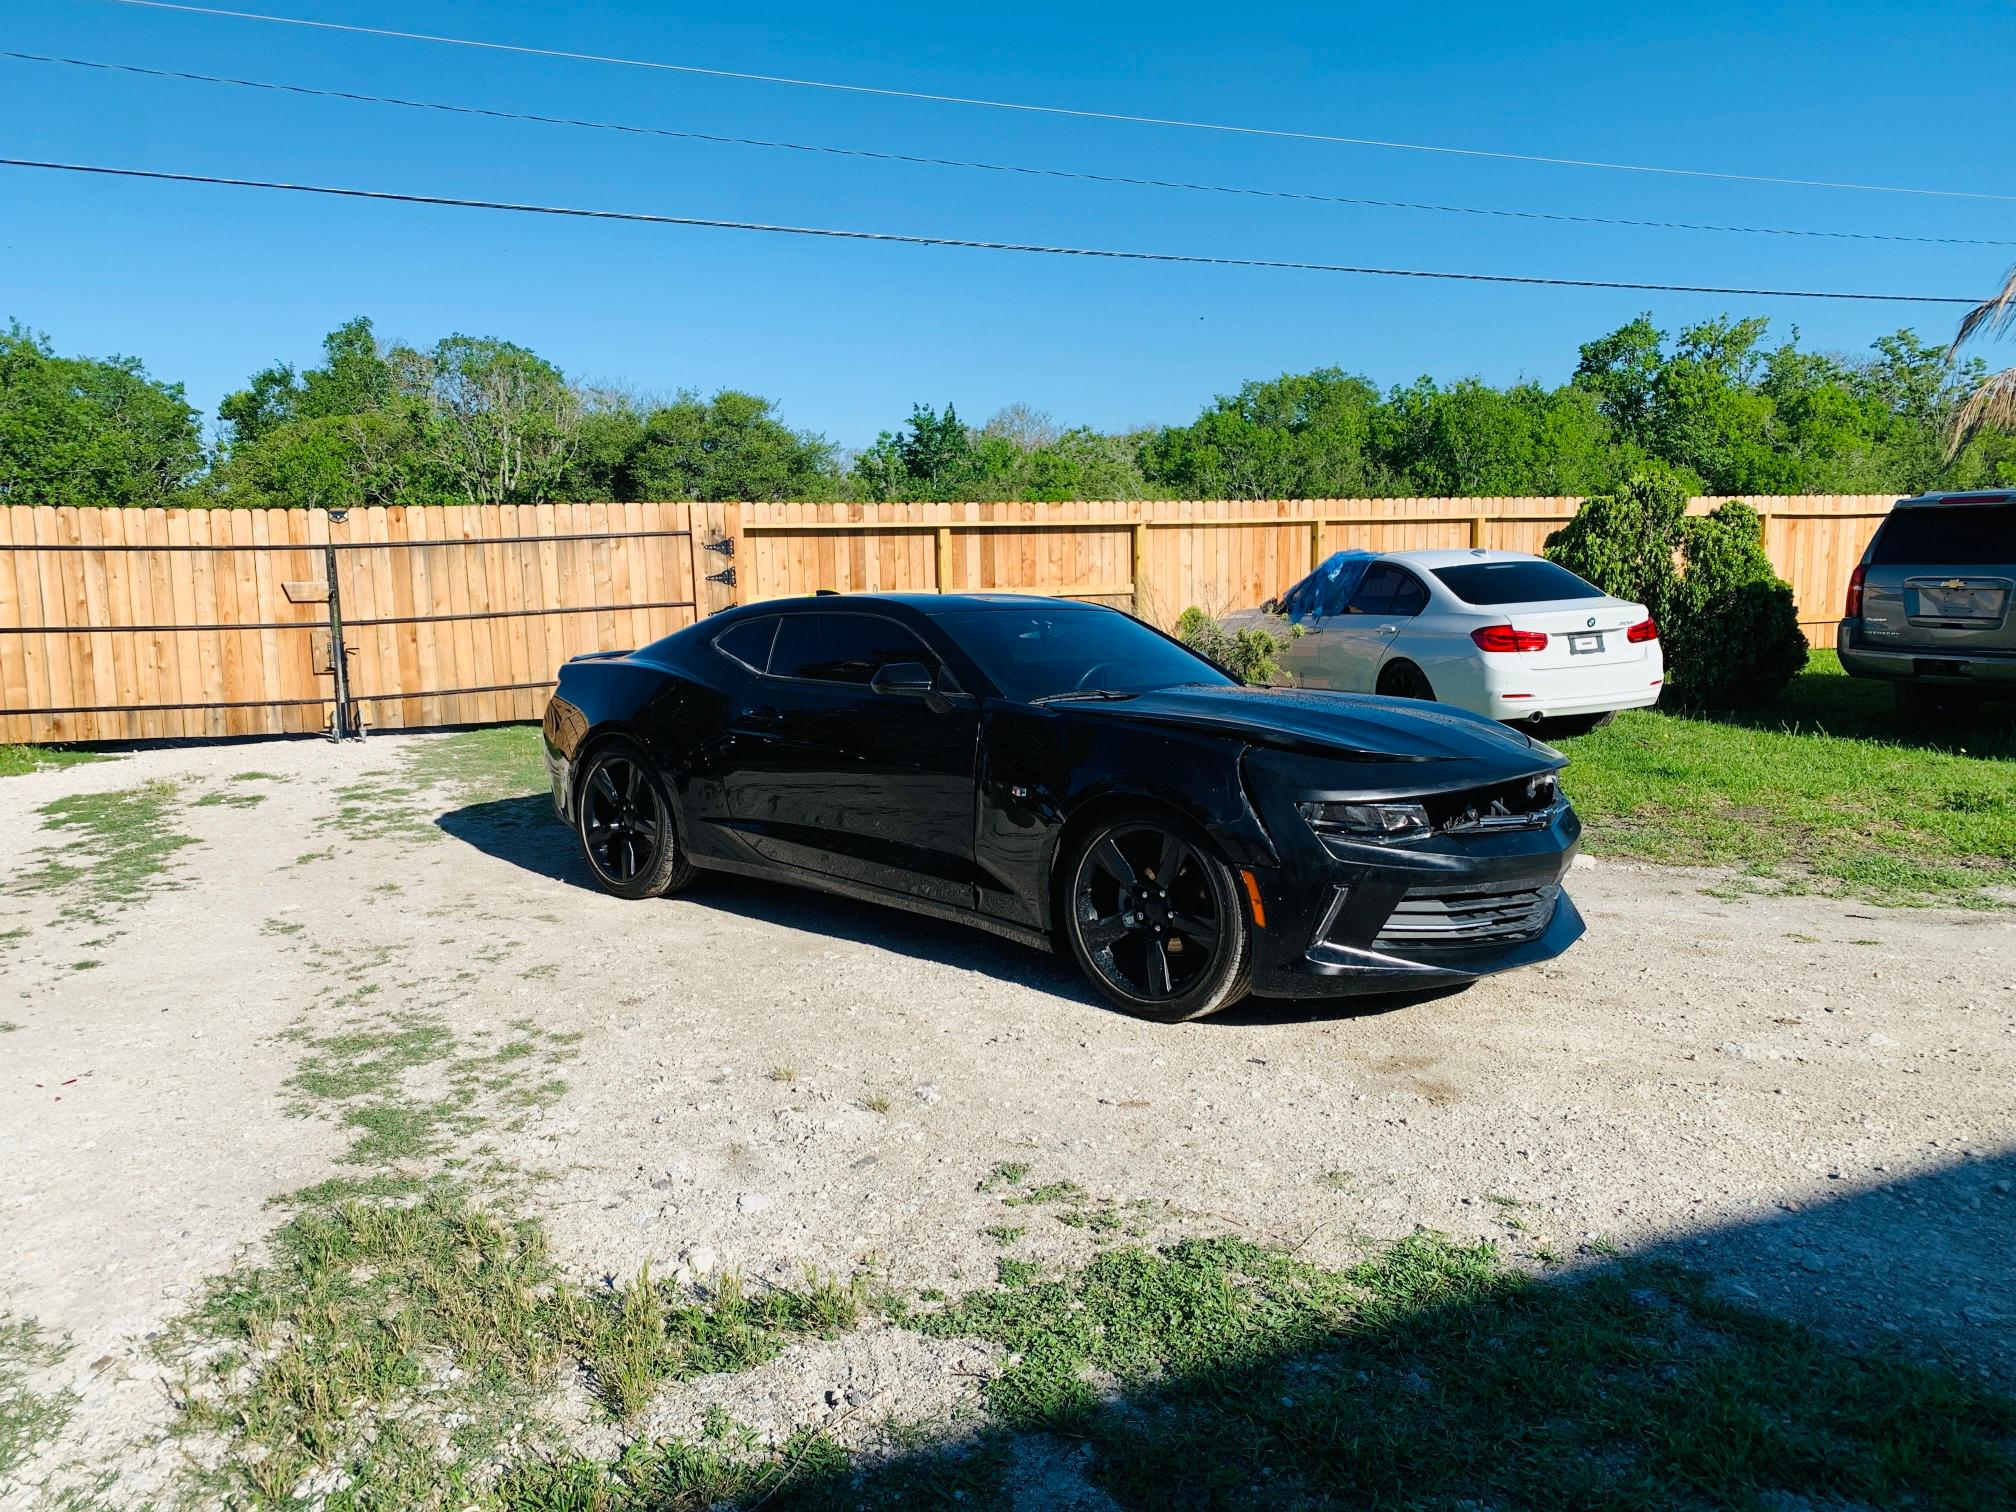 Chevrolet Camaro LT salvage cars for sale: 2018 Chevrolet Camaro LT